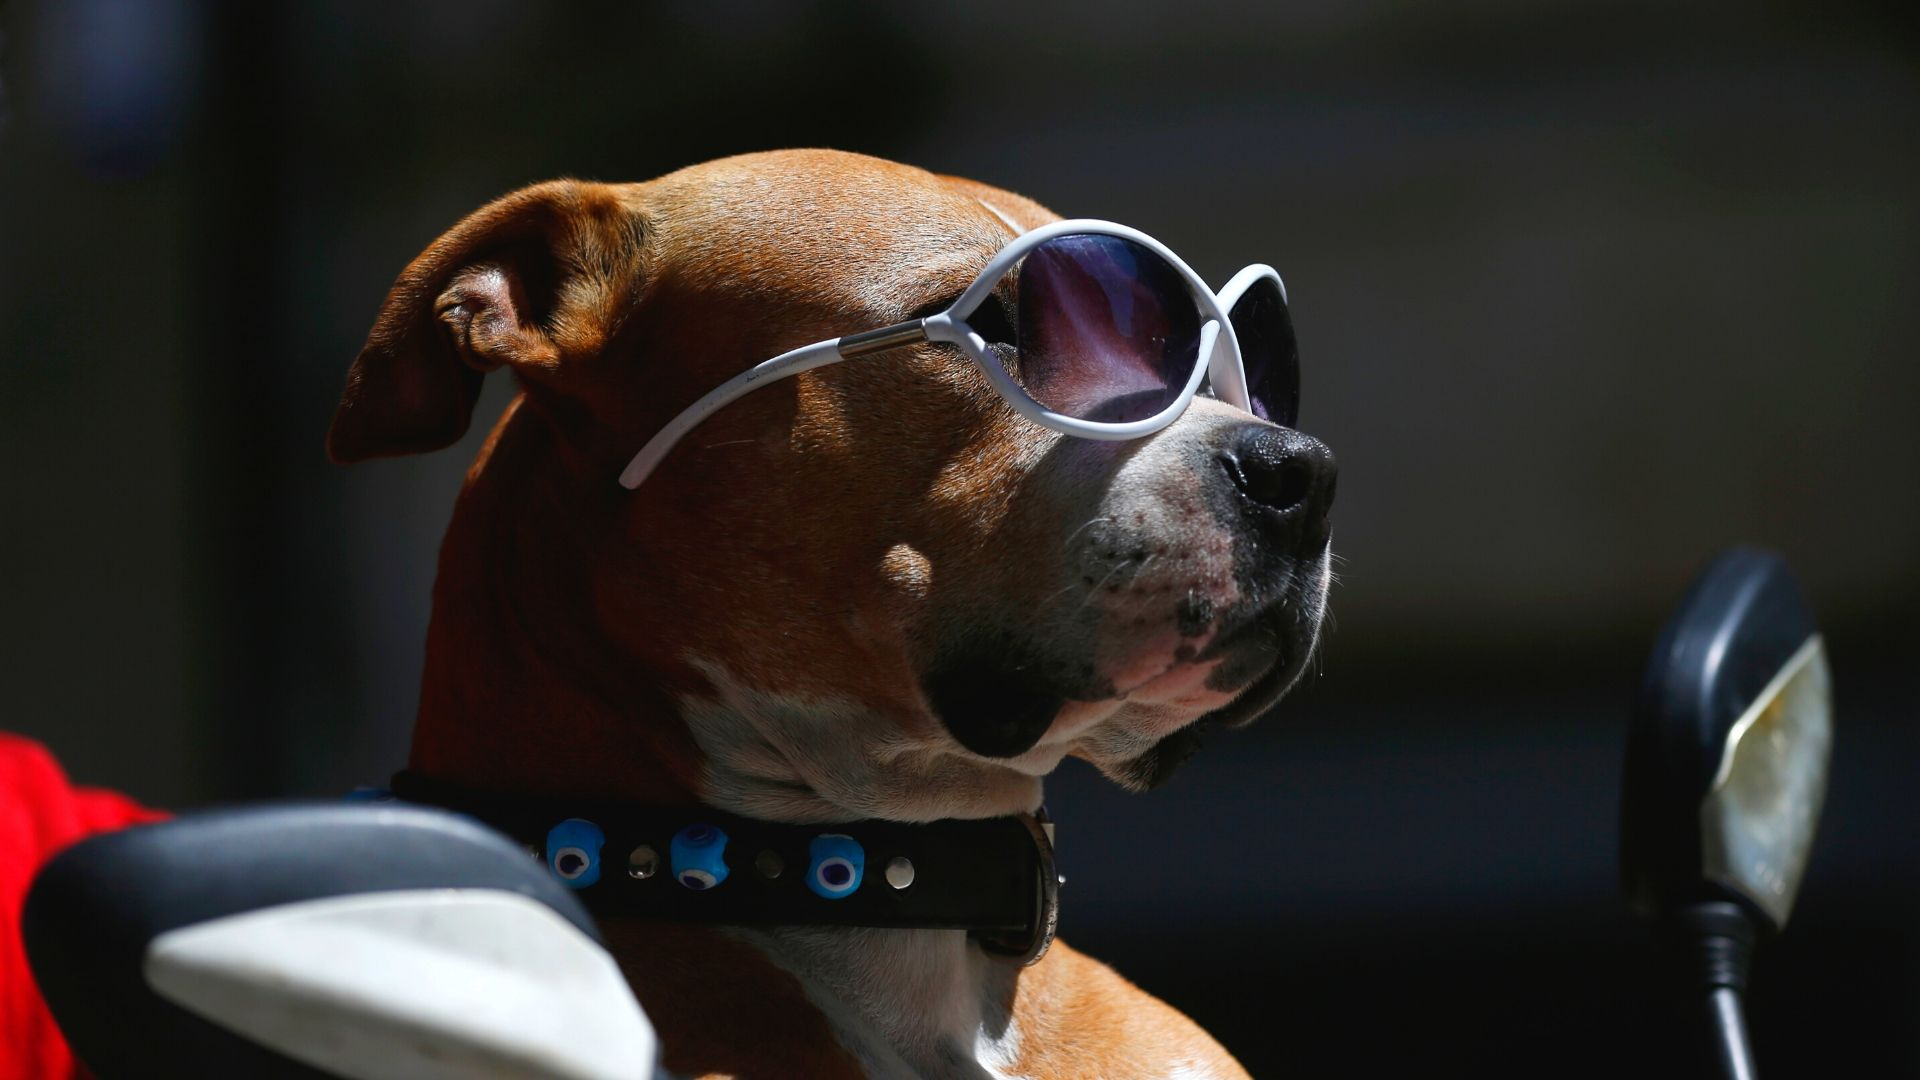 Dog in sunglasses in sunny, warm weather